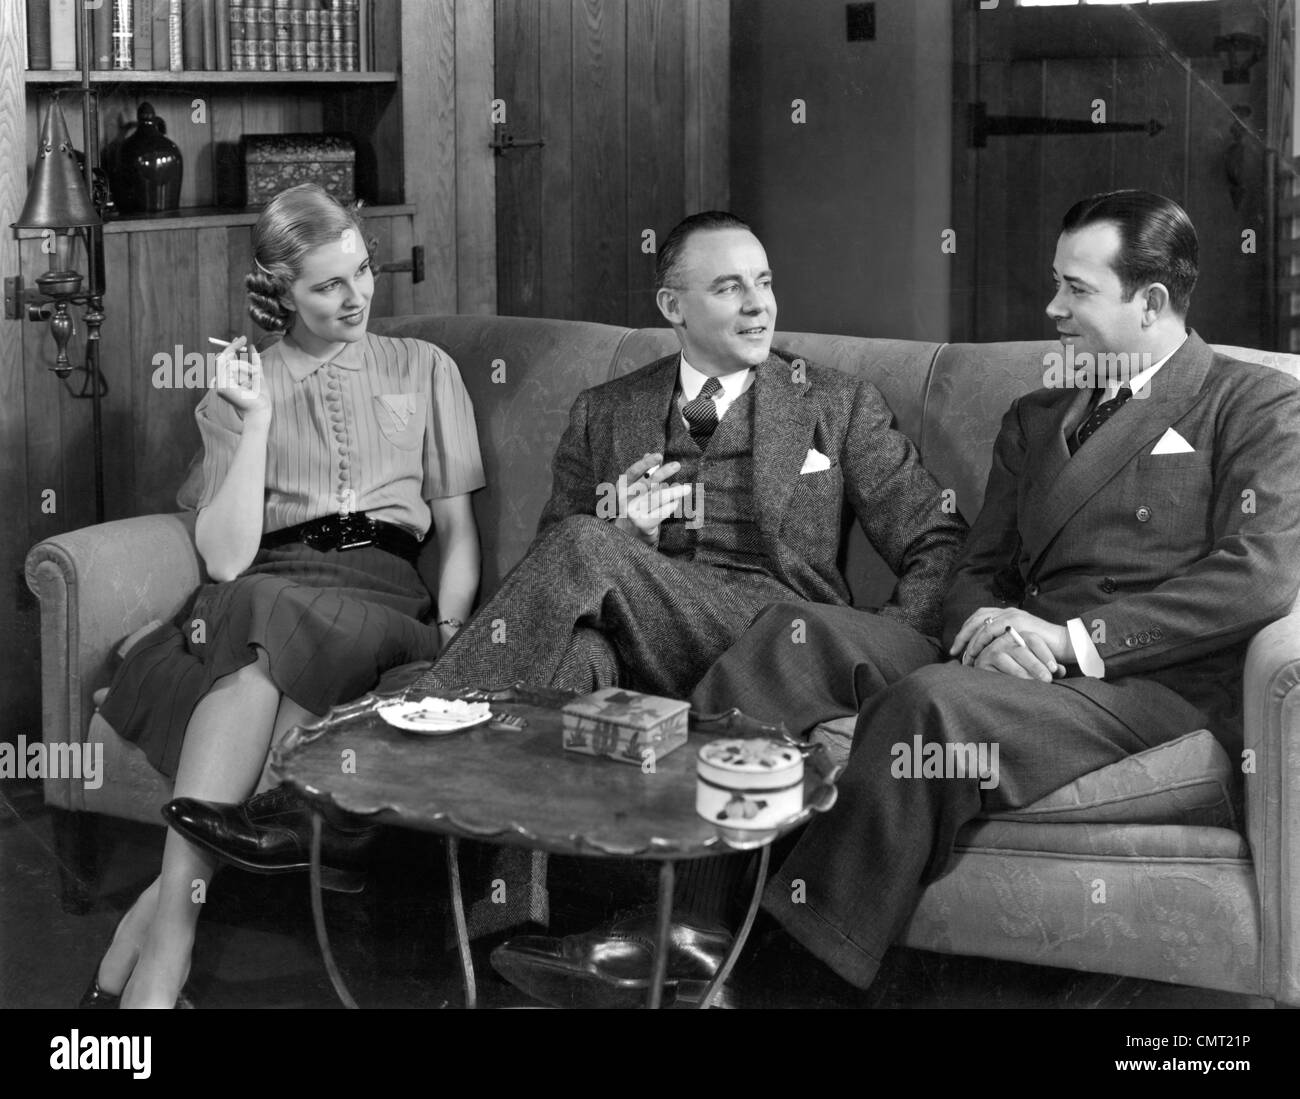 1930s 1940s TWO MEN AND ONE WOMAN SOCIAL GROUP SITTING ON COUCH SMOKING CIGARETTES TALKING - Stock Image